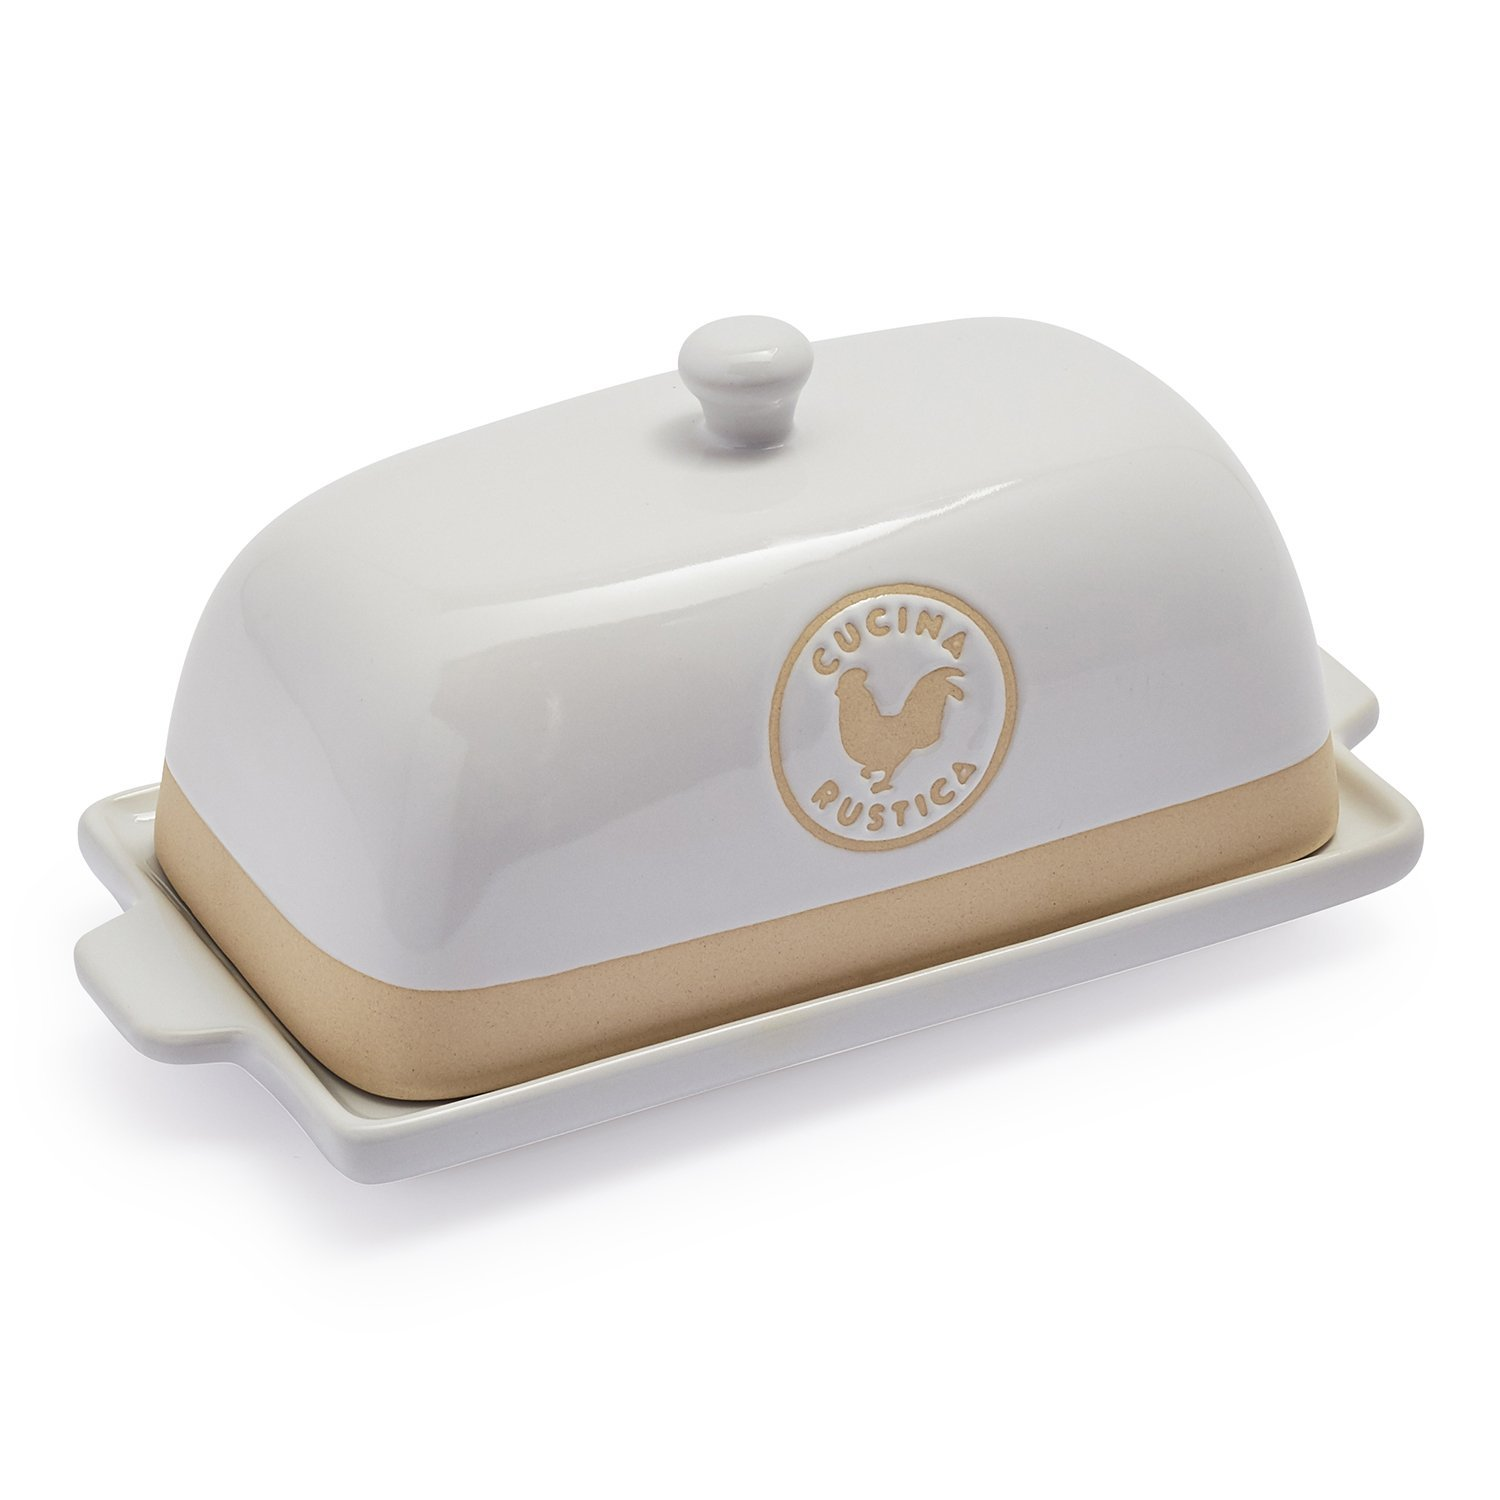 Cucina Kitchen Products Cucina Rustica Butter Dish As1680 Bt Red White Cucina Rustica